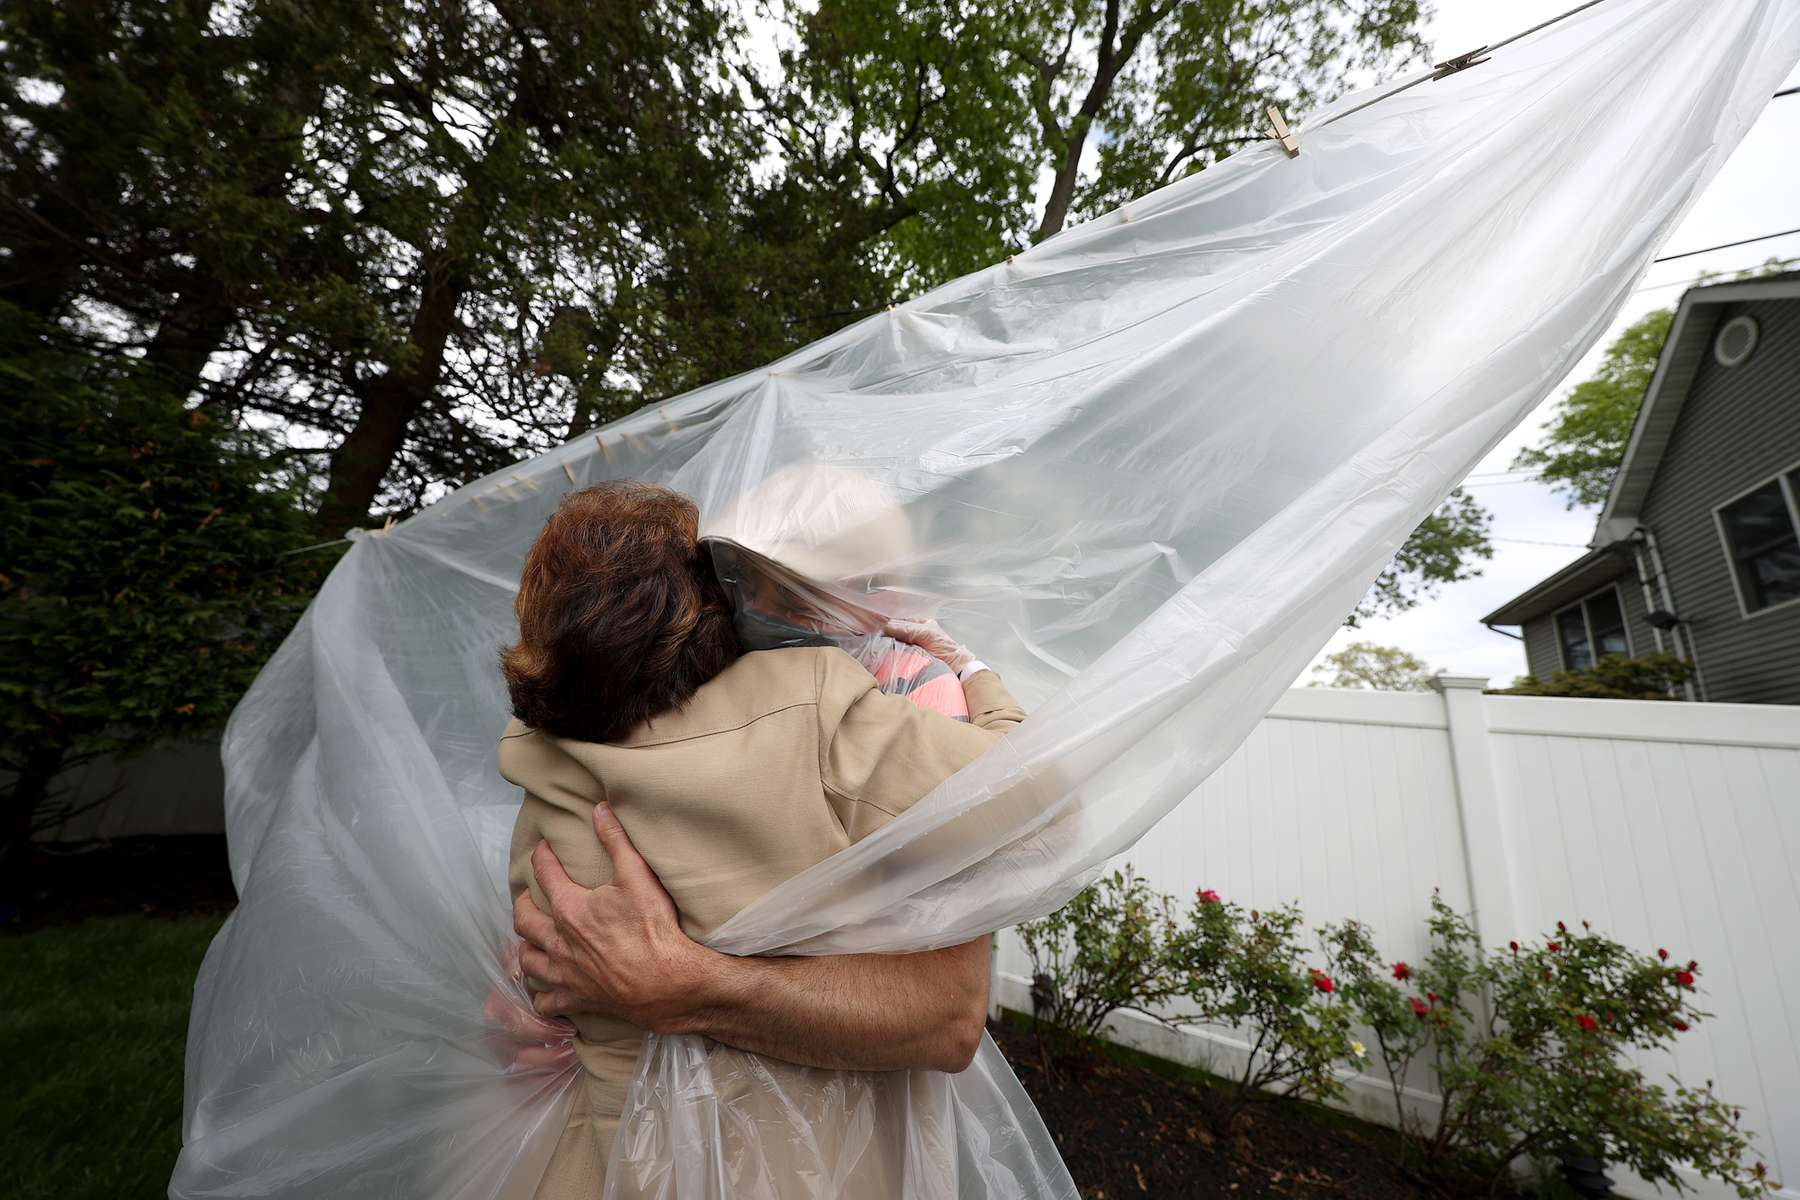 rank Sileo hugs his Mother Mary Grace Sileo through a plastic drop cloth hung up on a homemade clothes line during Memorial Day Weekend on May 24, 2020 in Wantagh, New York.  It is the first time they have had physical contact of any kind since the coronavirus COVID-19 pandemic lockdown started in late February.